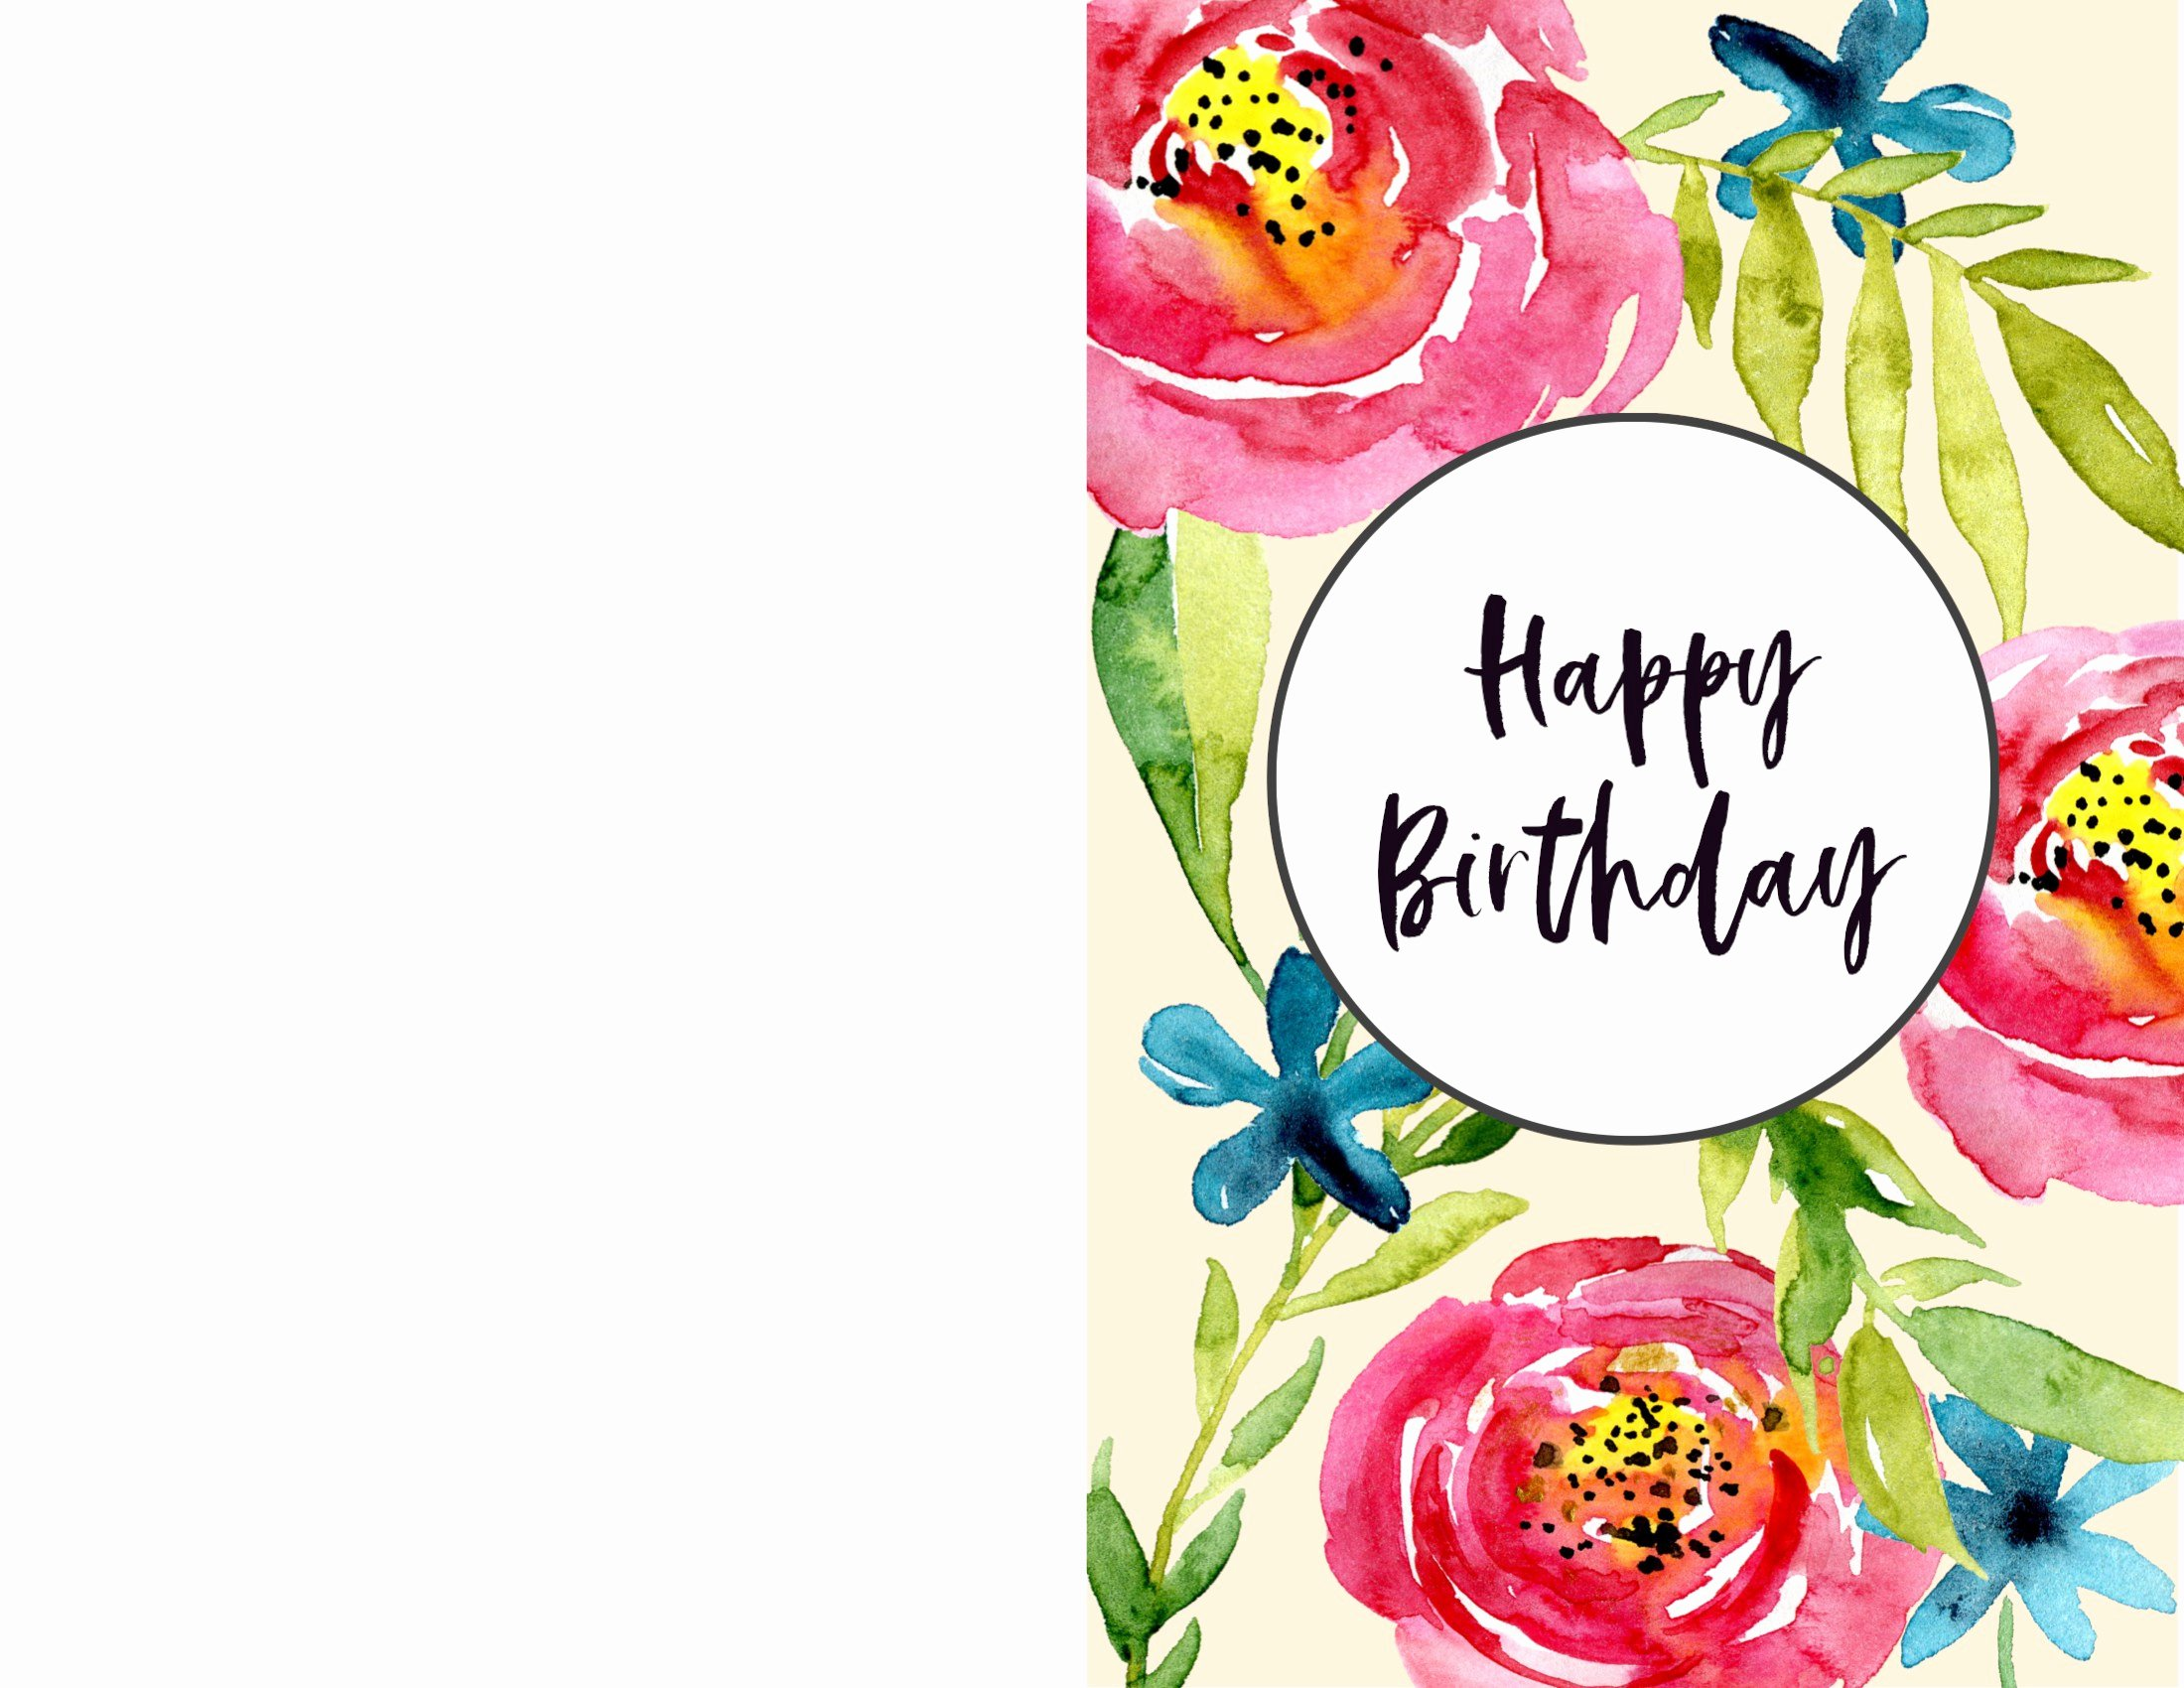 Happy Birthday Card Template Elegant Free Printable Birthday Cards Paper Trail Design